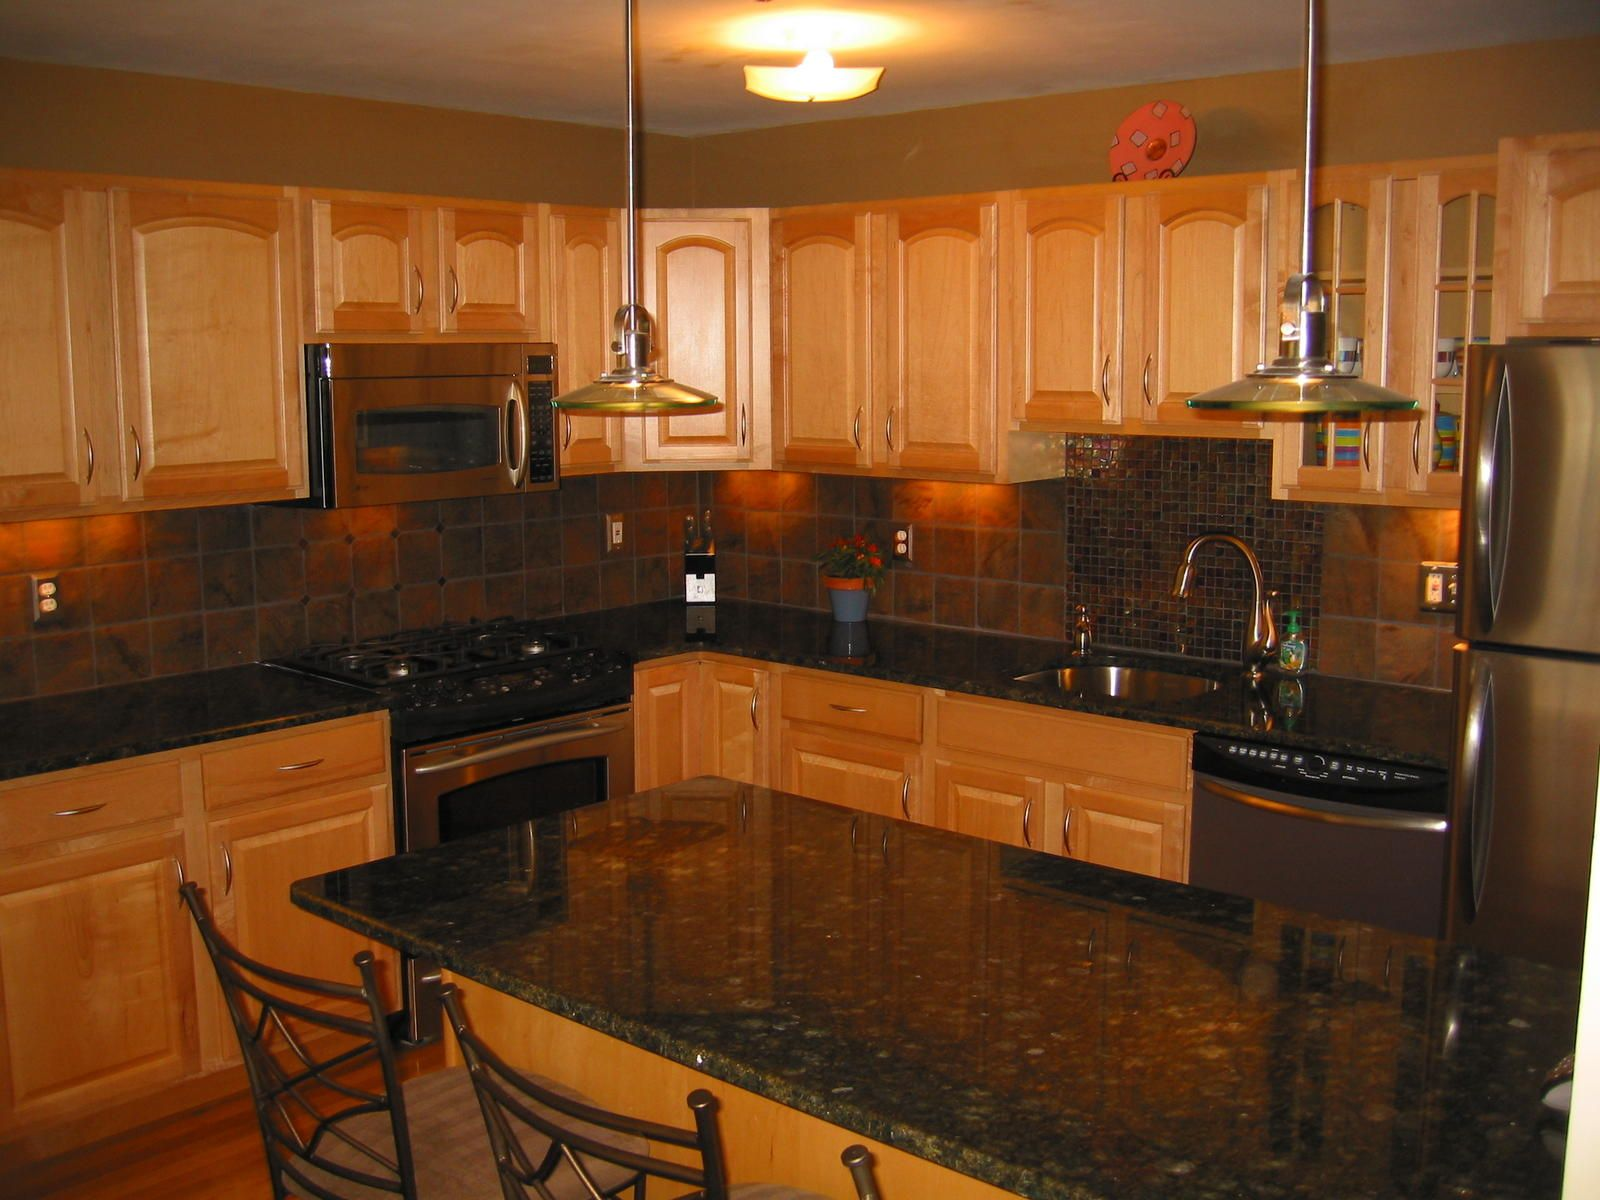 kitchen paint color ideas with oak cabinets | ... is Uba Tuba - lovely